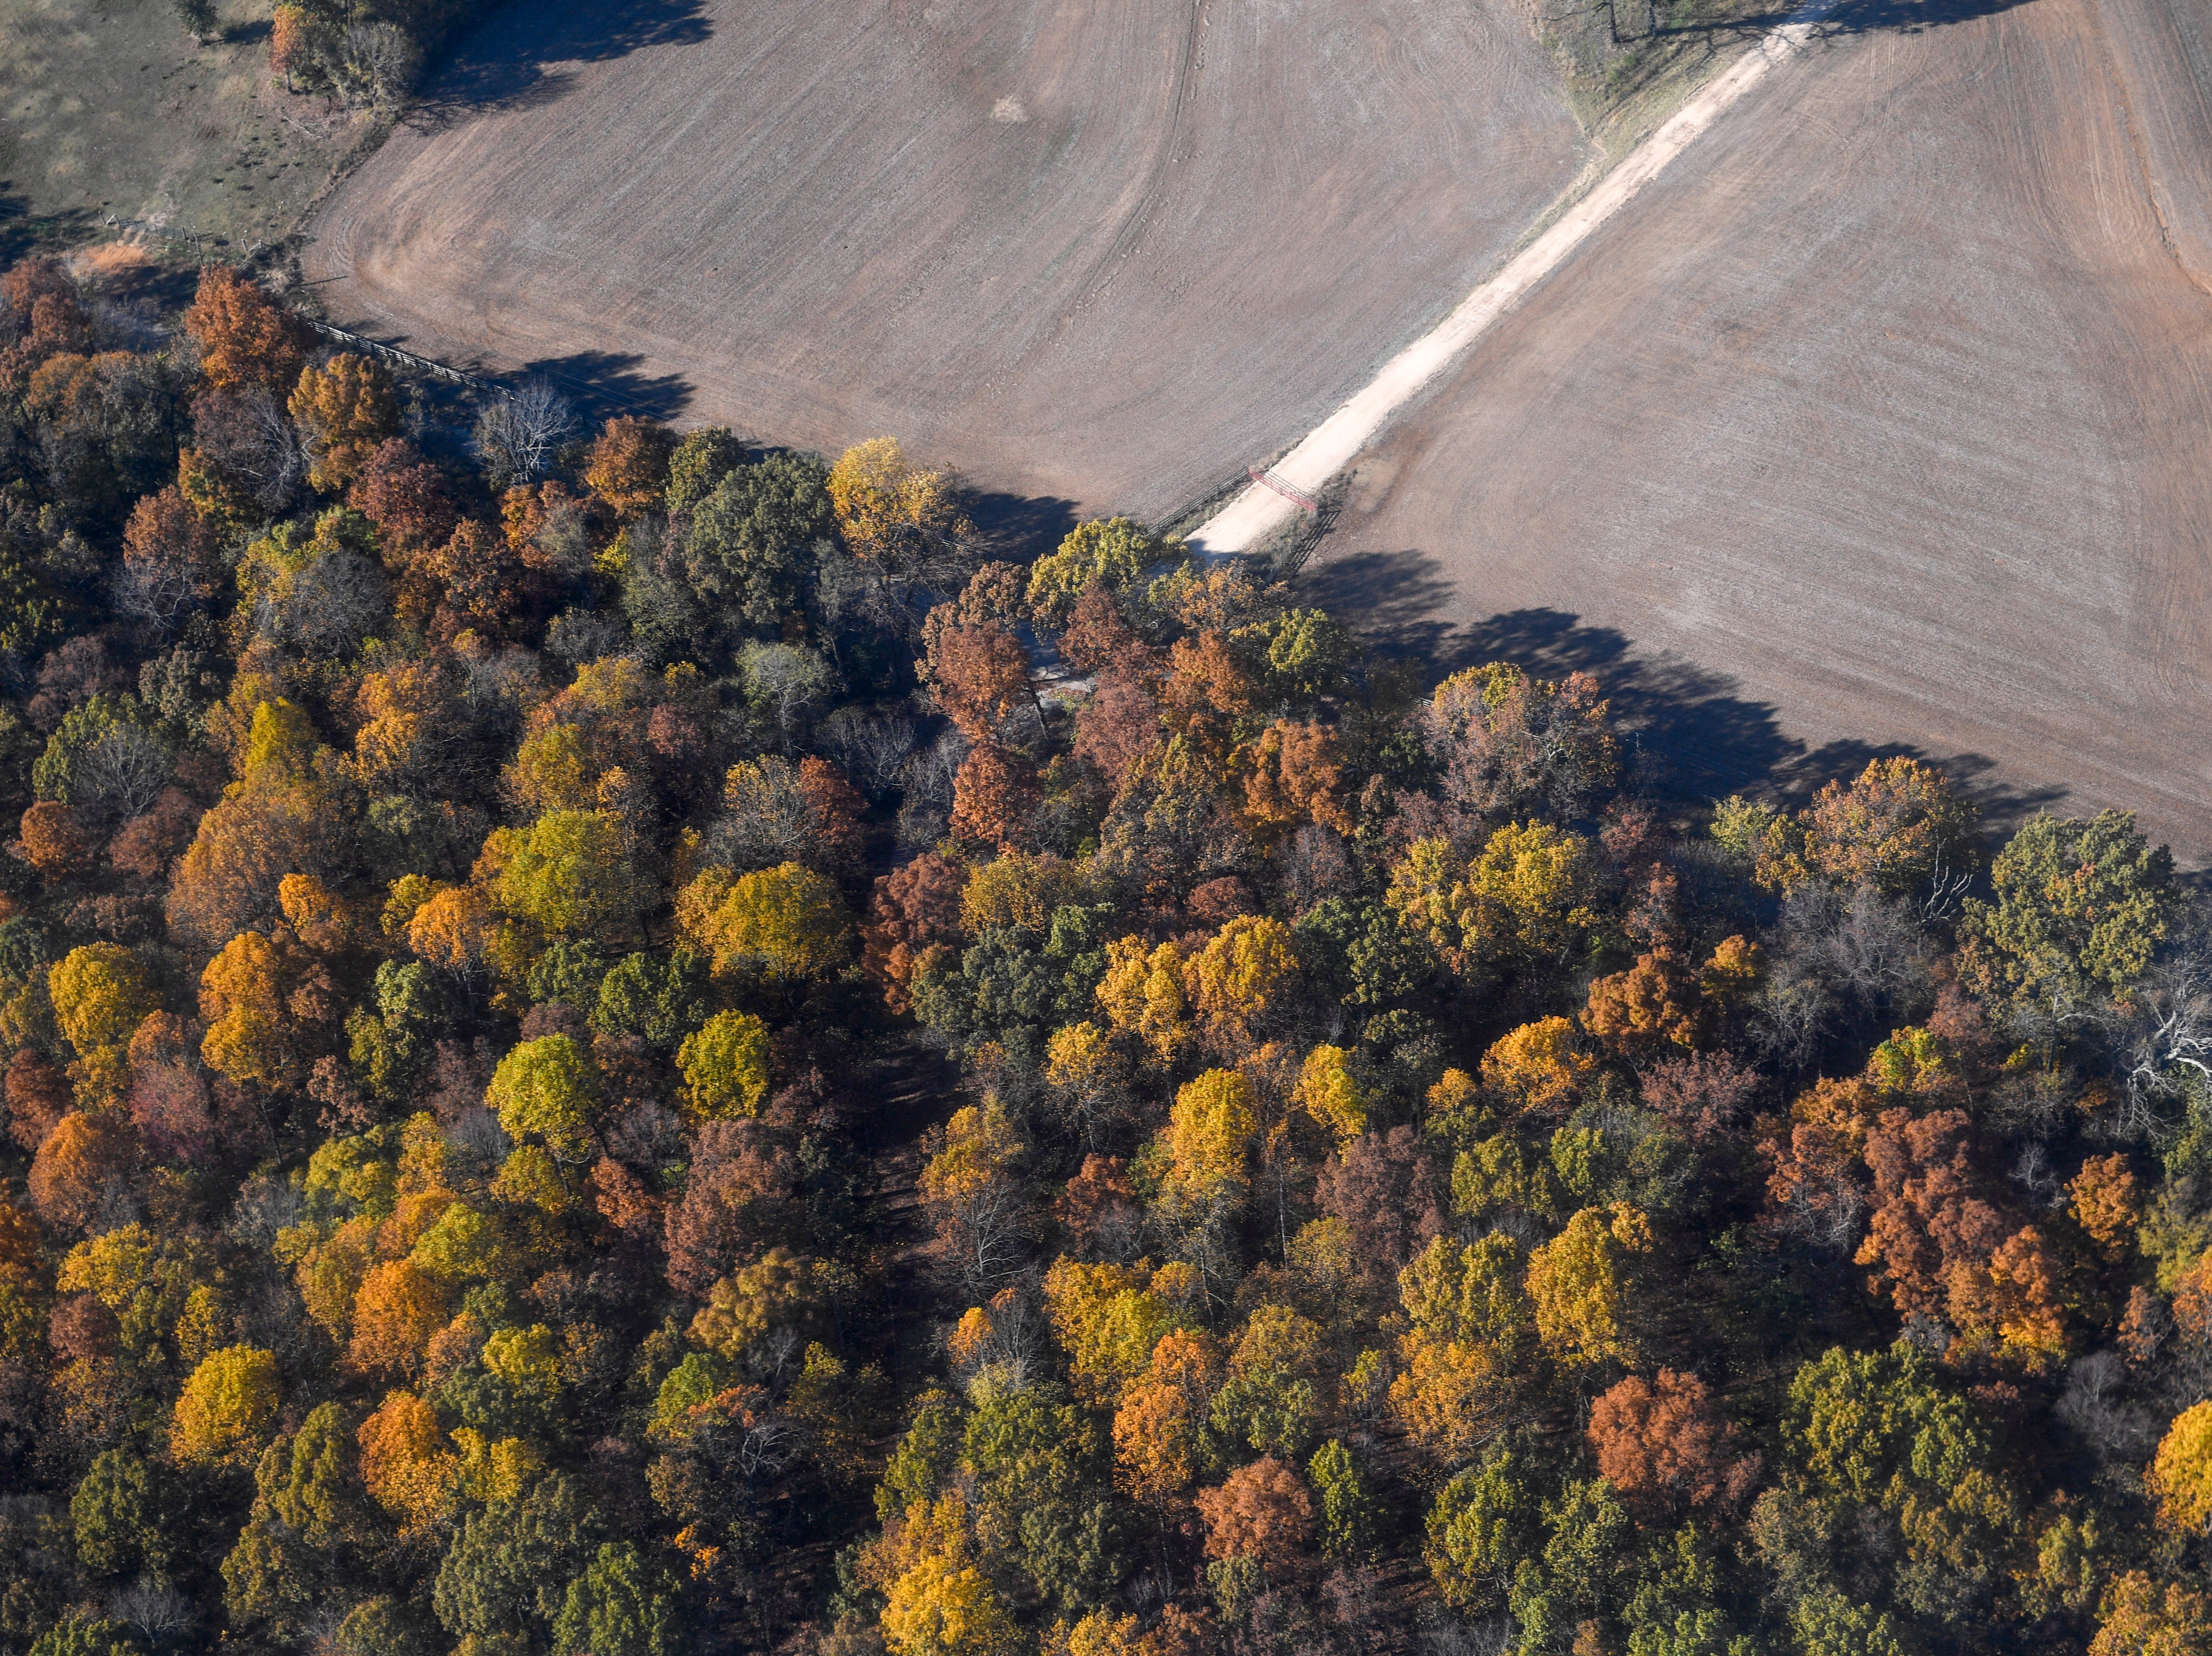 The changing of colors on trees can be seen in this photo from a Black Hawk helicopter during the annual Bosslift event put on by Employer Support of the Guard and Reserve (ESGR) and the Tennessee National Guard at 164th Airlift Wing in Memphis, Tenn., on Thursday, Nov. 8, 2018.